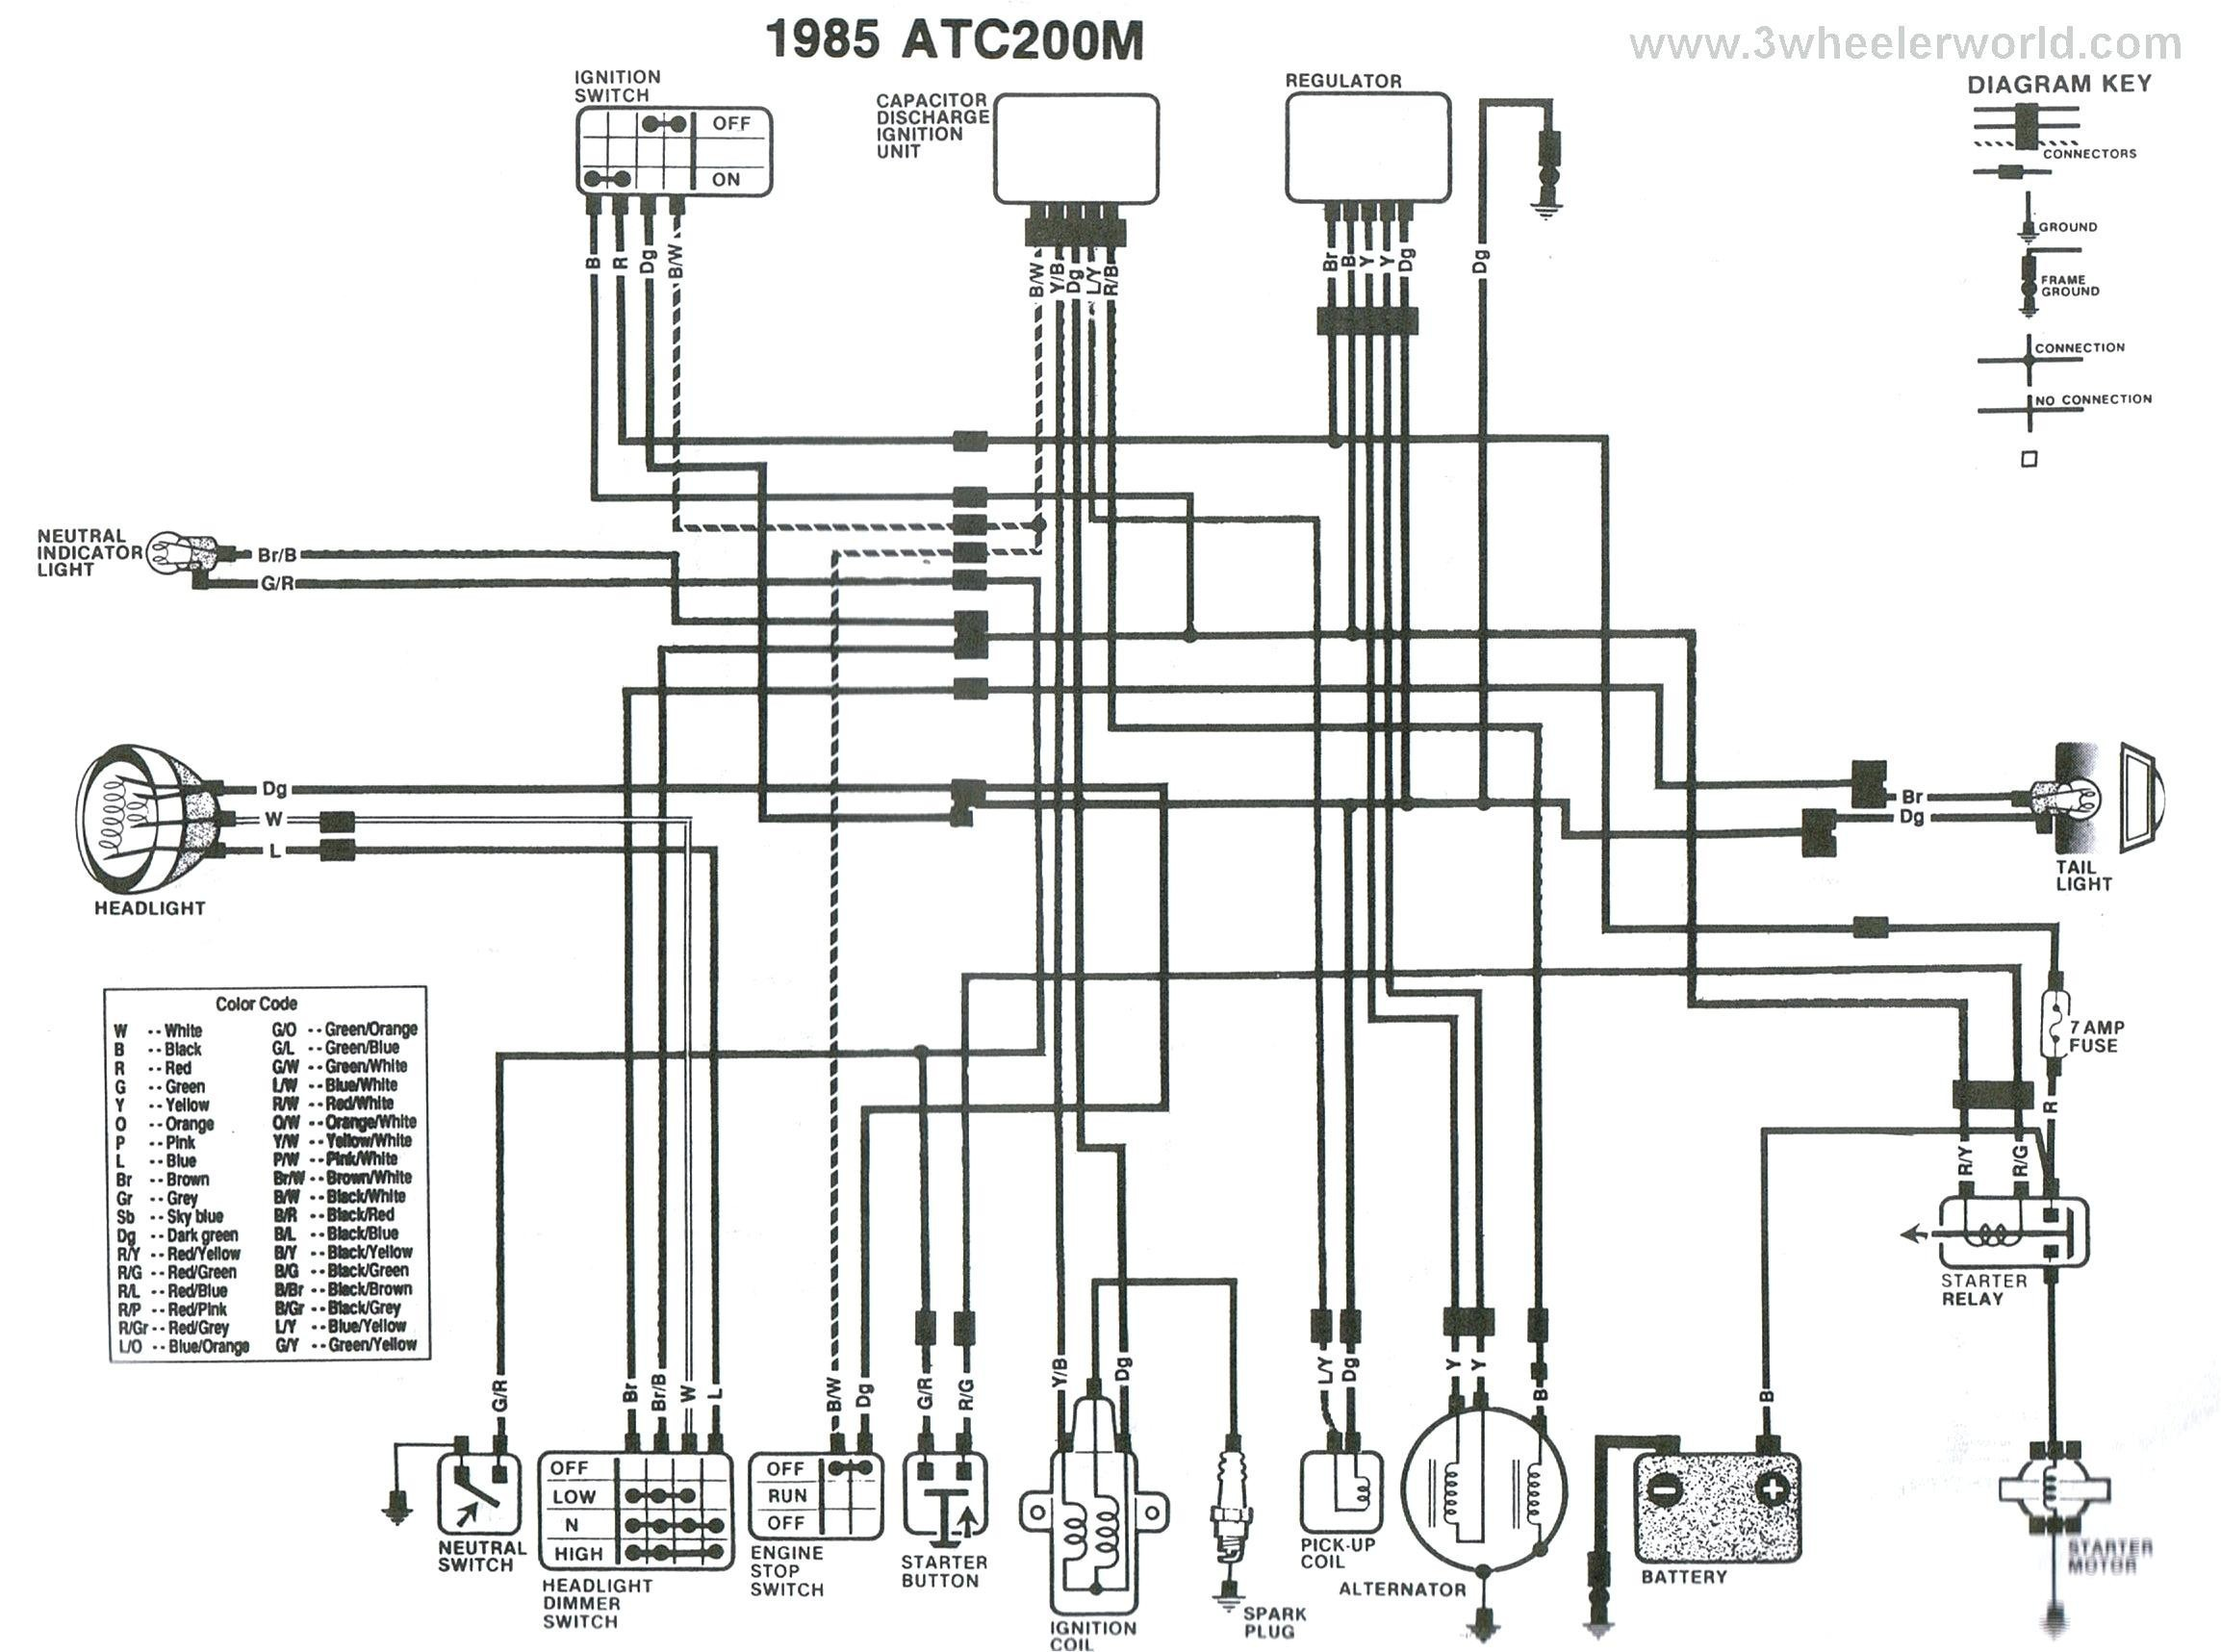 Honda atv Wiring Diagram Wiring for 99 Suzuki 300 Another Blog About Wiring Diagram • Of Honda atv Wiring Diagram